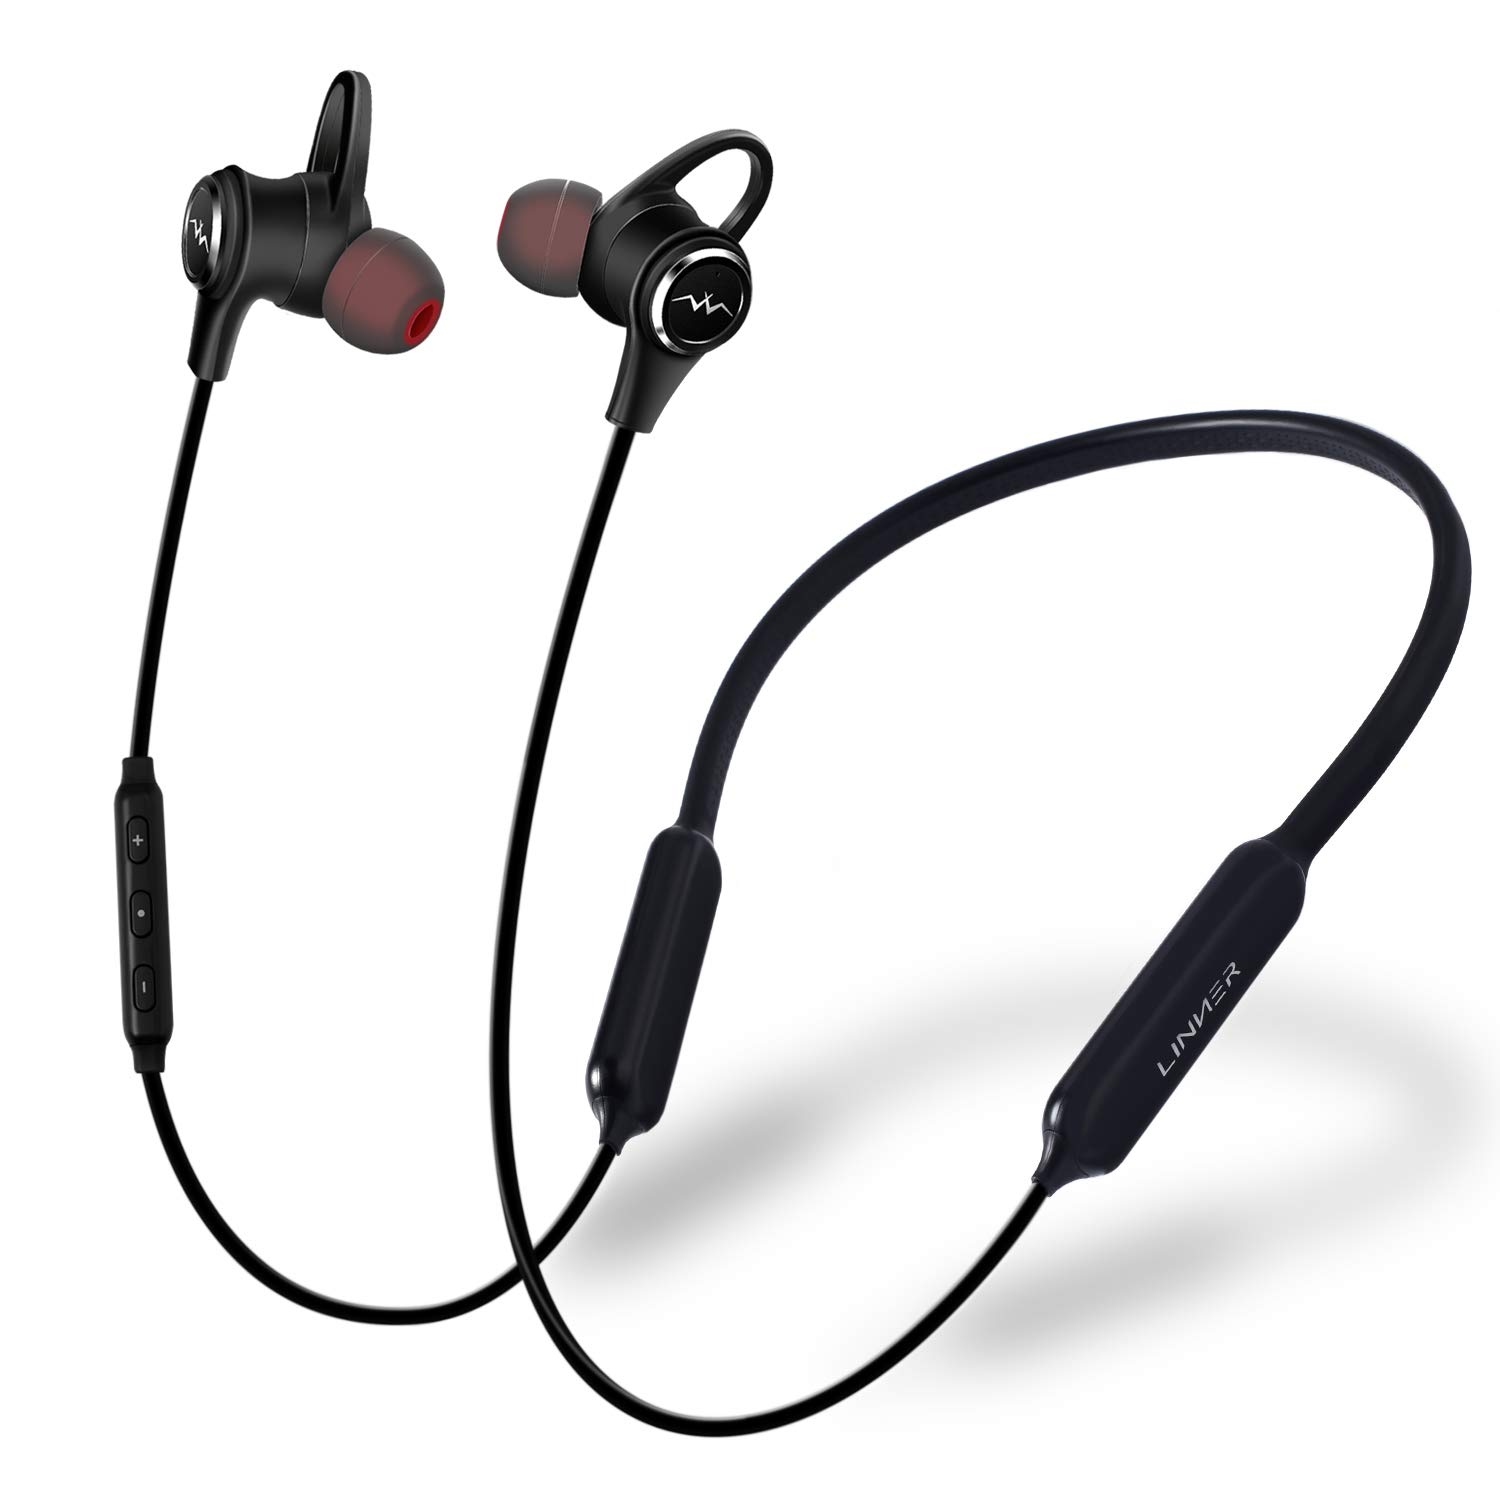 Newest 2019 Active Noise Cancelling Wireless Headphones, Wireless Bluetooth Earbuds Extra Bass, Bluetooth Noise Cancelling Earbuds with Microphone and Remote Noise Reduction, 13 Hours Playtime